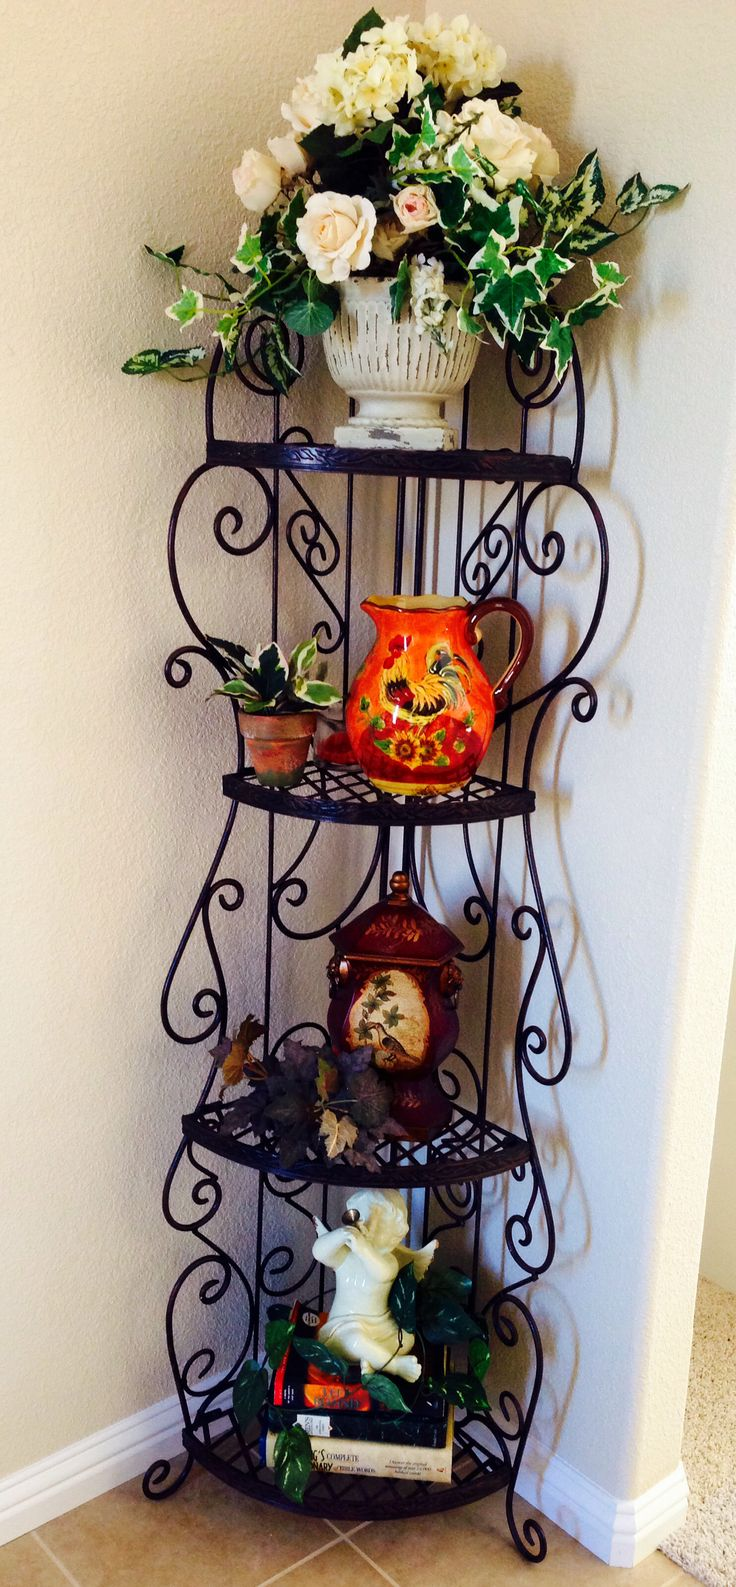 My Tuscan Decor Found And Collected From Craigslist The Wrought Iron  Corner Shelf I Bought